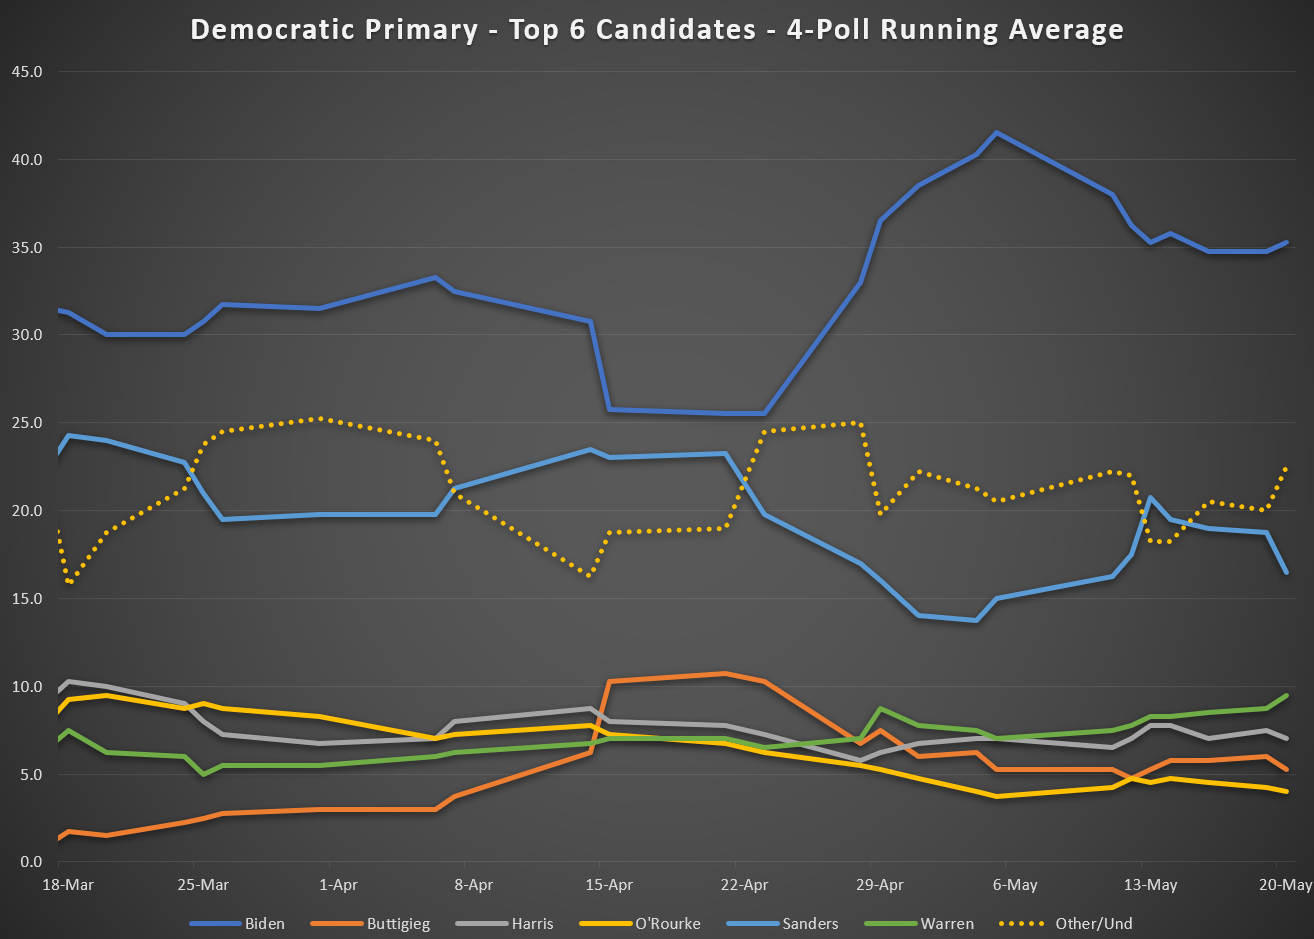 Democratic Primary - Top 6 Candidates - March-May 2019